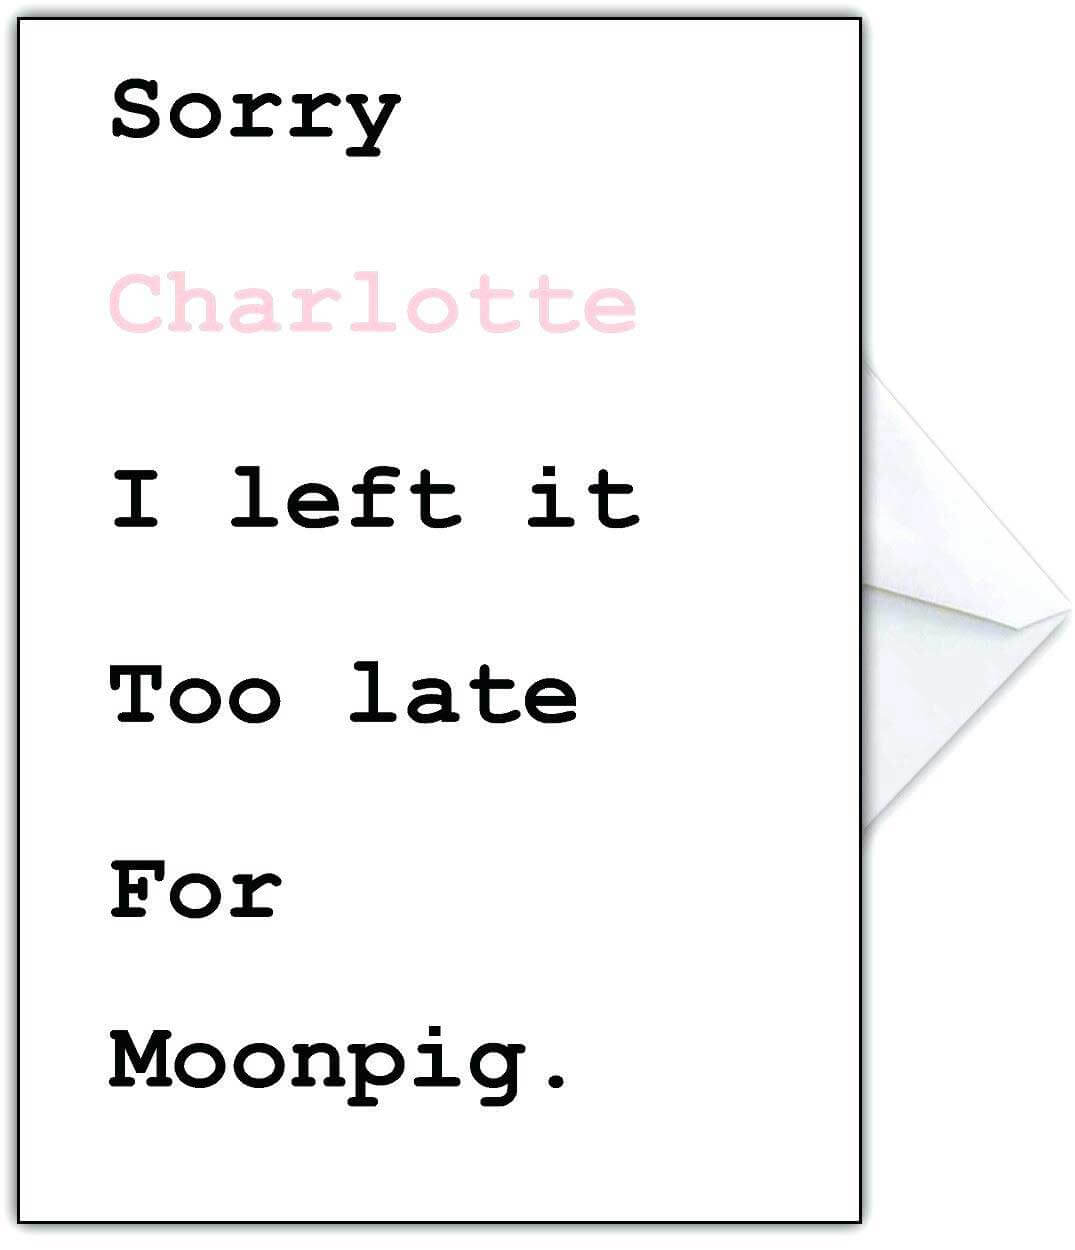 Printable Leaving Card Template 650*756 - Sorry You Re In Sorry You Re Leaving Card Template